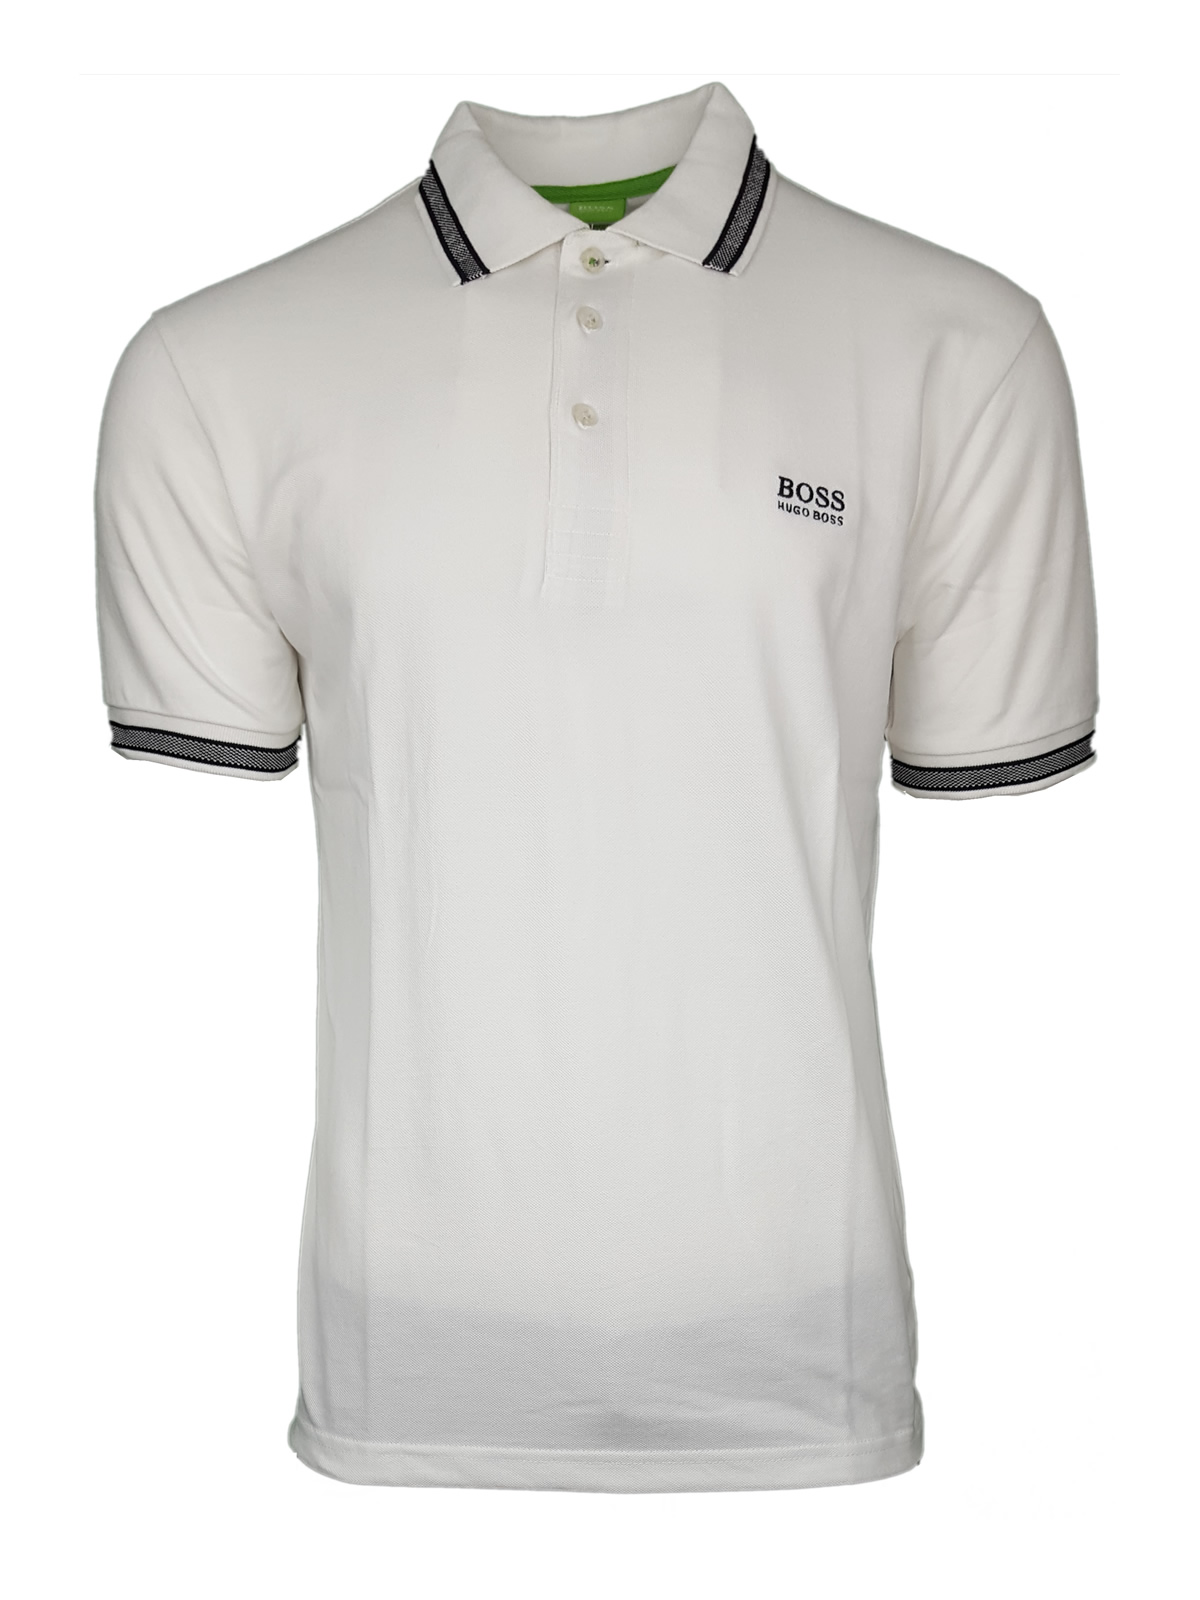 5c3c7af64 Hugo Boss Paddy Pro. Short Sleeve Polo Shirt. Modern Fit in White | INTOTO7  Menswear